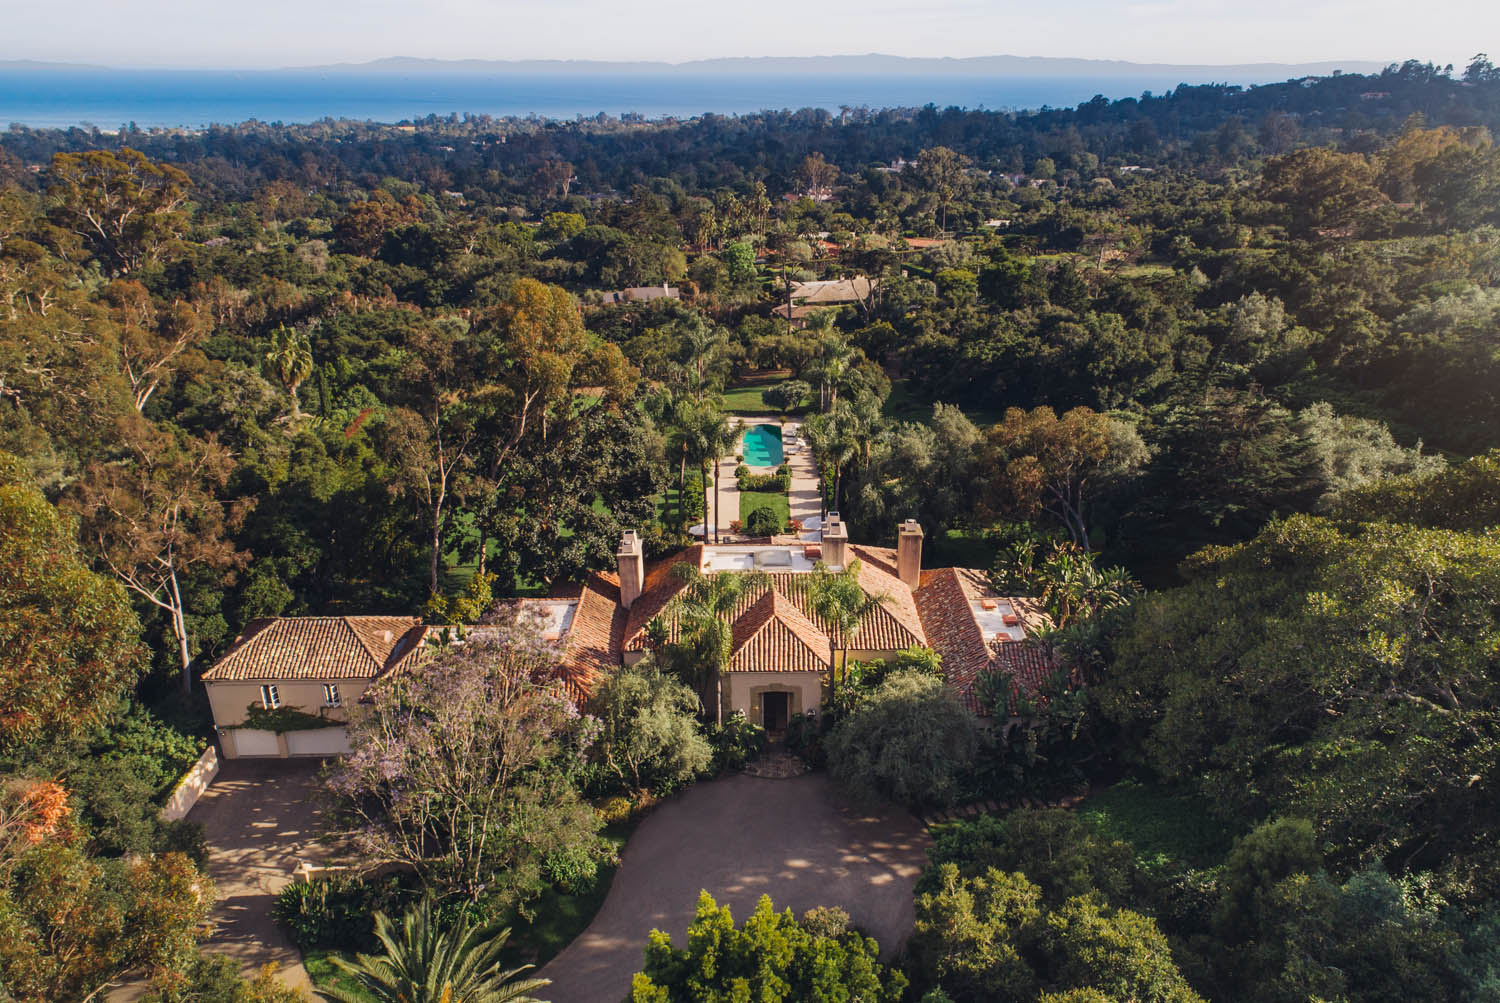 Property for Sale: 691 Picacho Lane, Montecito, CA 93108 List Price: $16,500,000 4 Beds 5 Full Baths 1 Half Bath Main House 6,394 Sq Ft 3 Beds 1 Full Bath 1 Half Bath Guest House 1,421 Sq Ft Picacho Paradise!